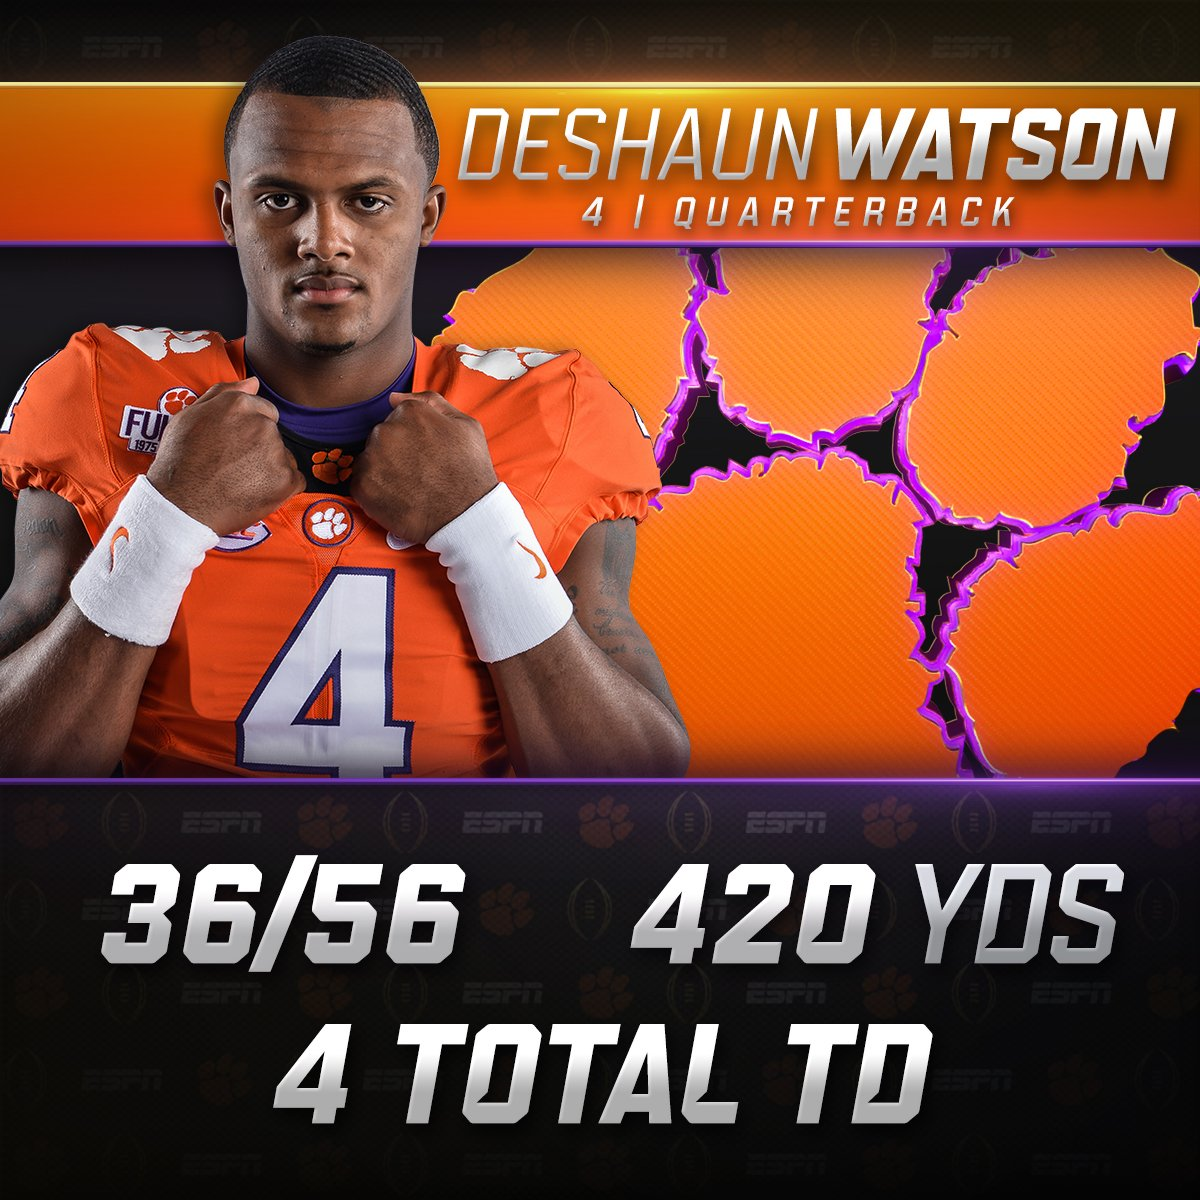 Deshaun Watson was a man on a mission tonight.  Mission accomplished. ✅ https://t.co/AKeUdao2H0